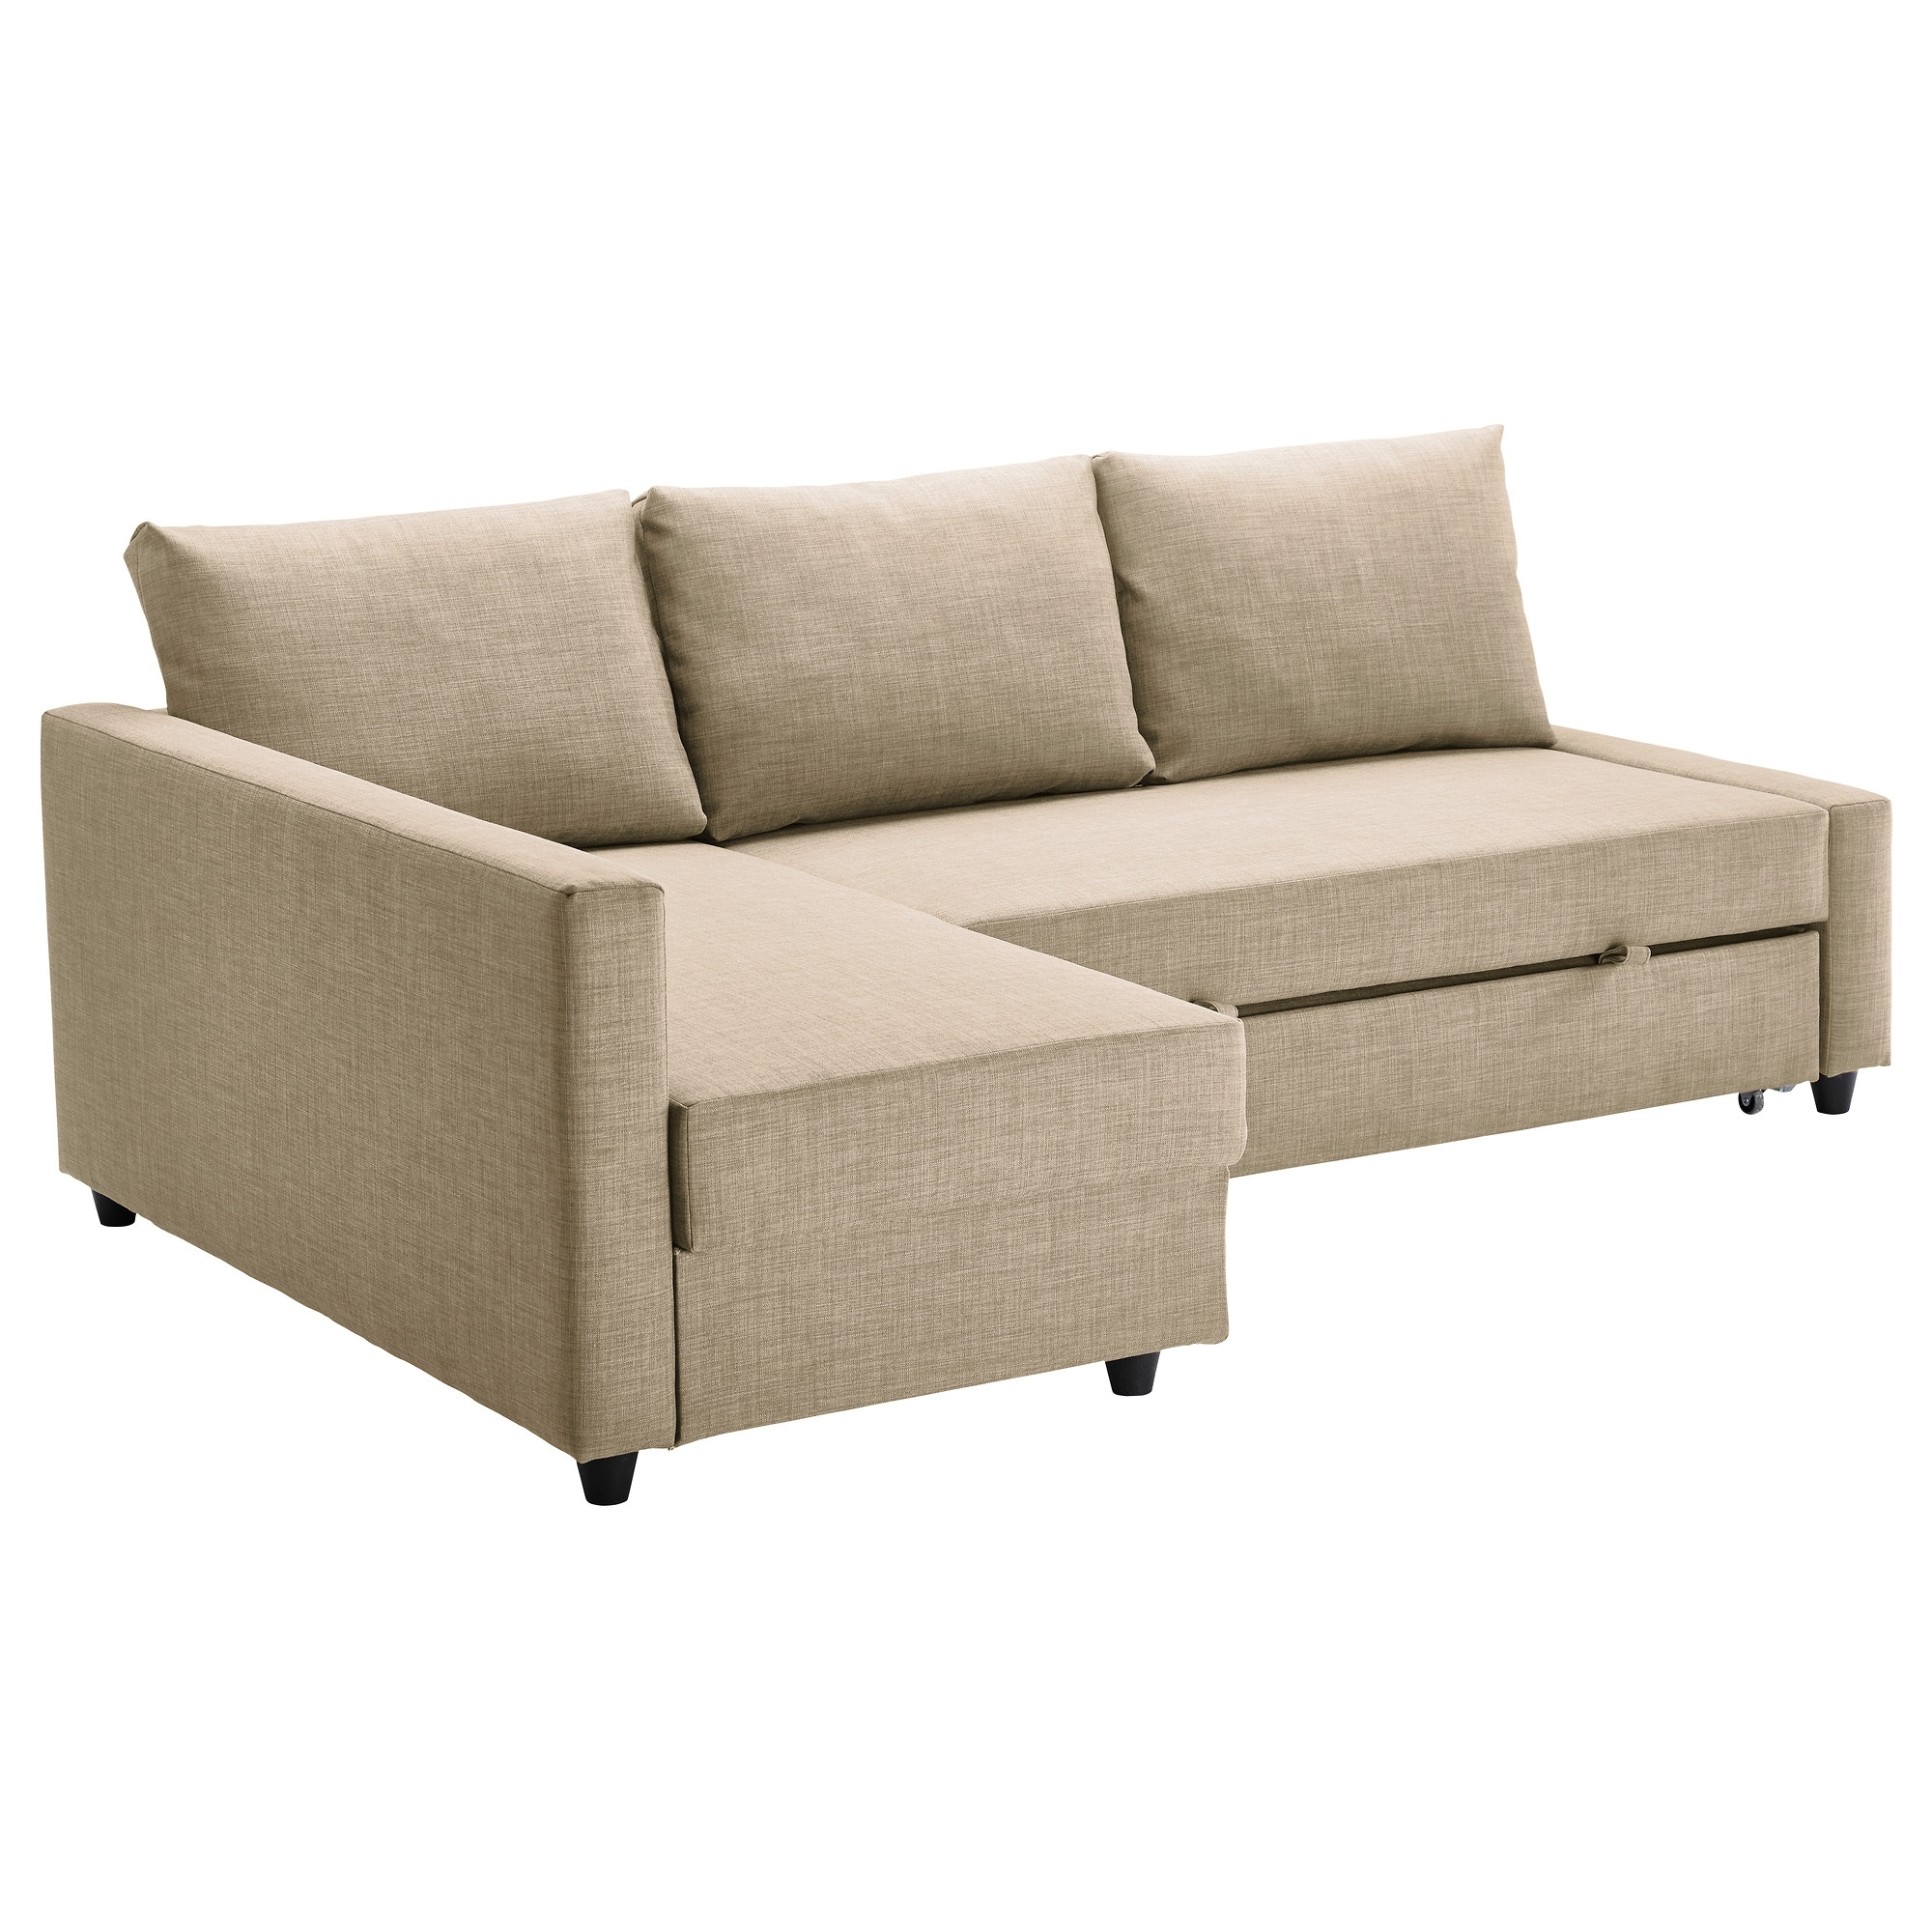 Famous Chaise Sofa Sleepers In Friheten Sleeper Sectional,3 Seat W/storage – Skiftebo Dark Gray (View 13 of 15)